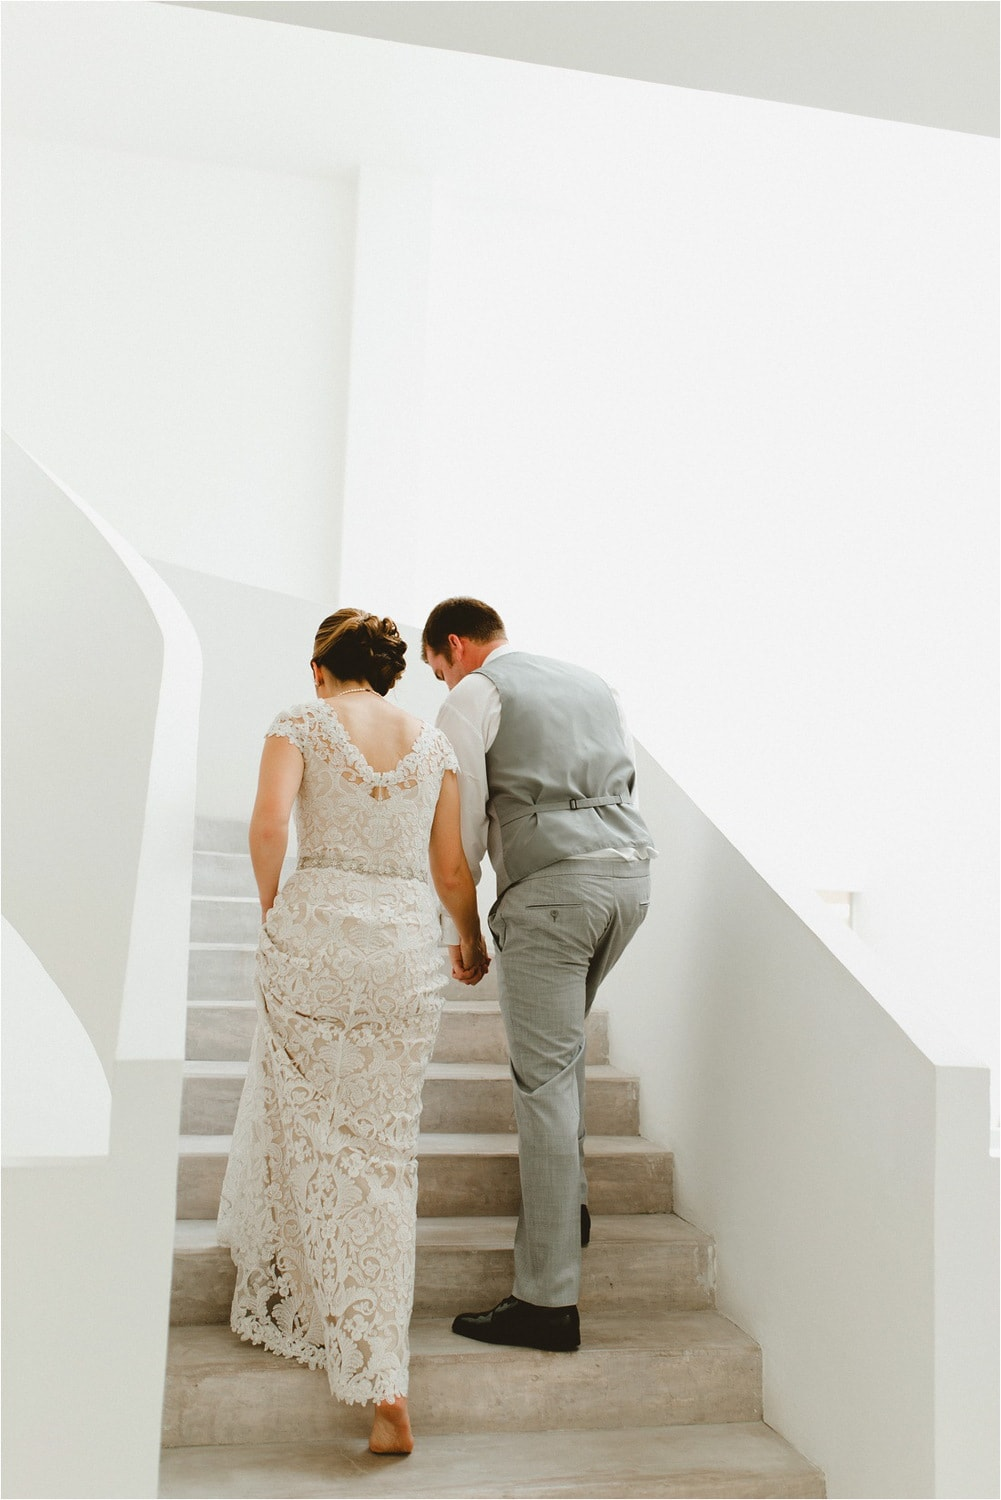 belovedhotel_cancun_wedding__388_blogstomped.jpg